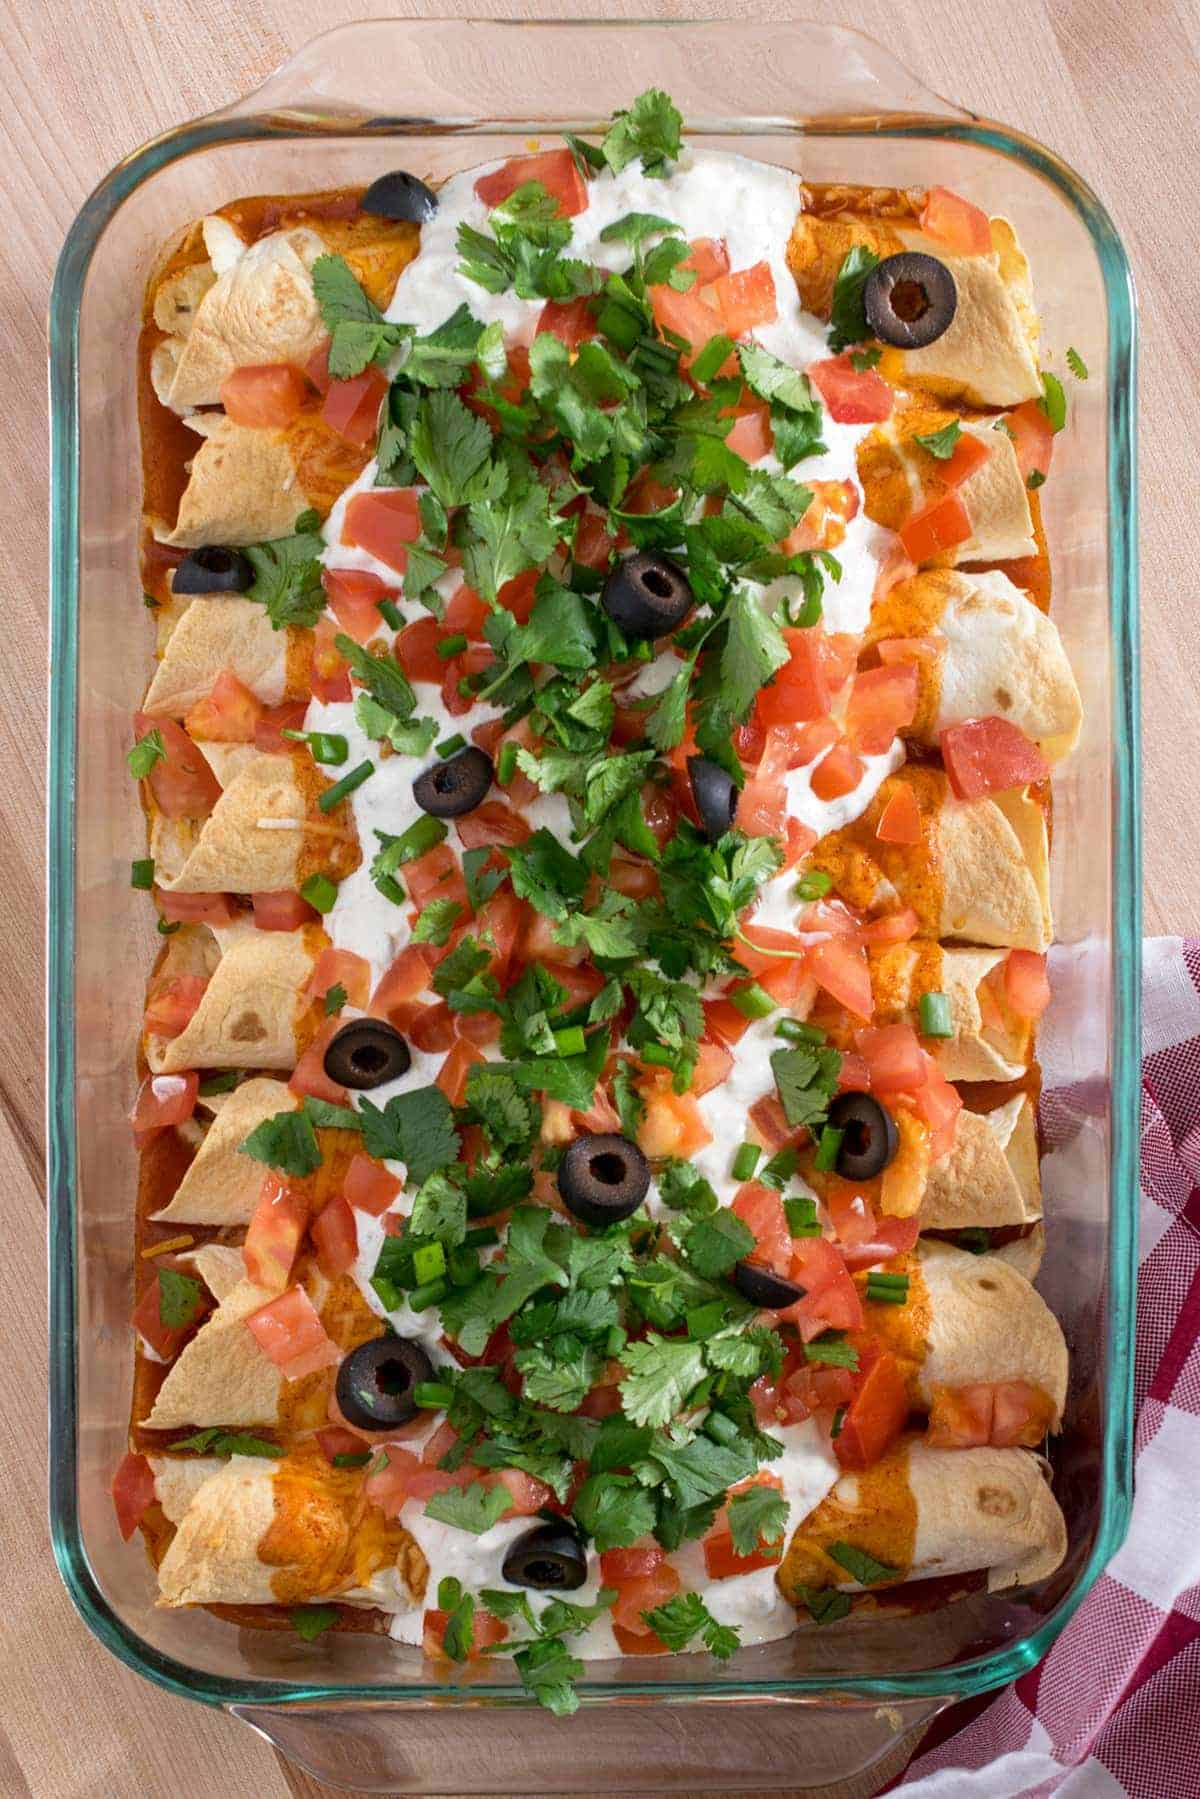 Aerial view of baked chicken enchiladas with sour cream, pico de gallo, olives, and cilantro in baking dish